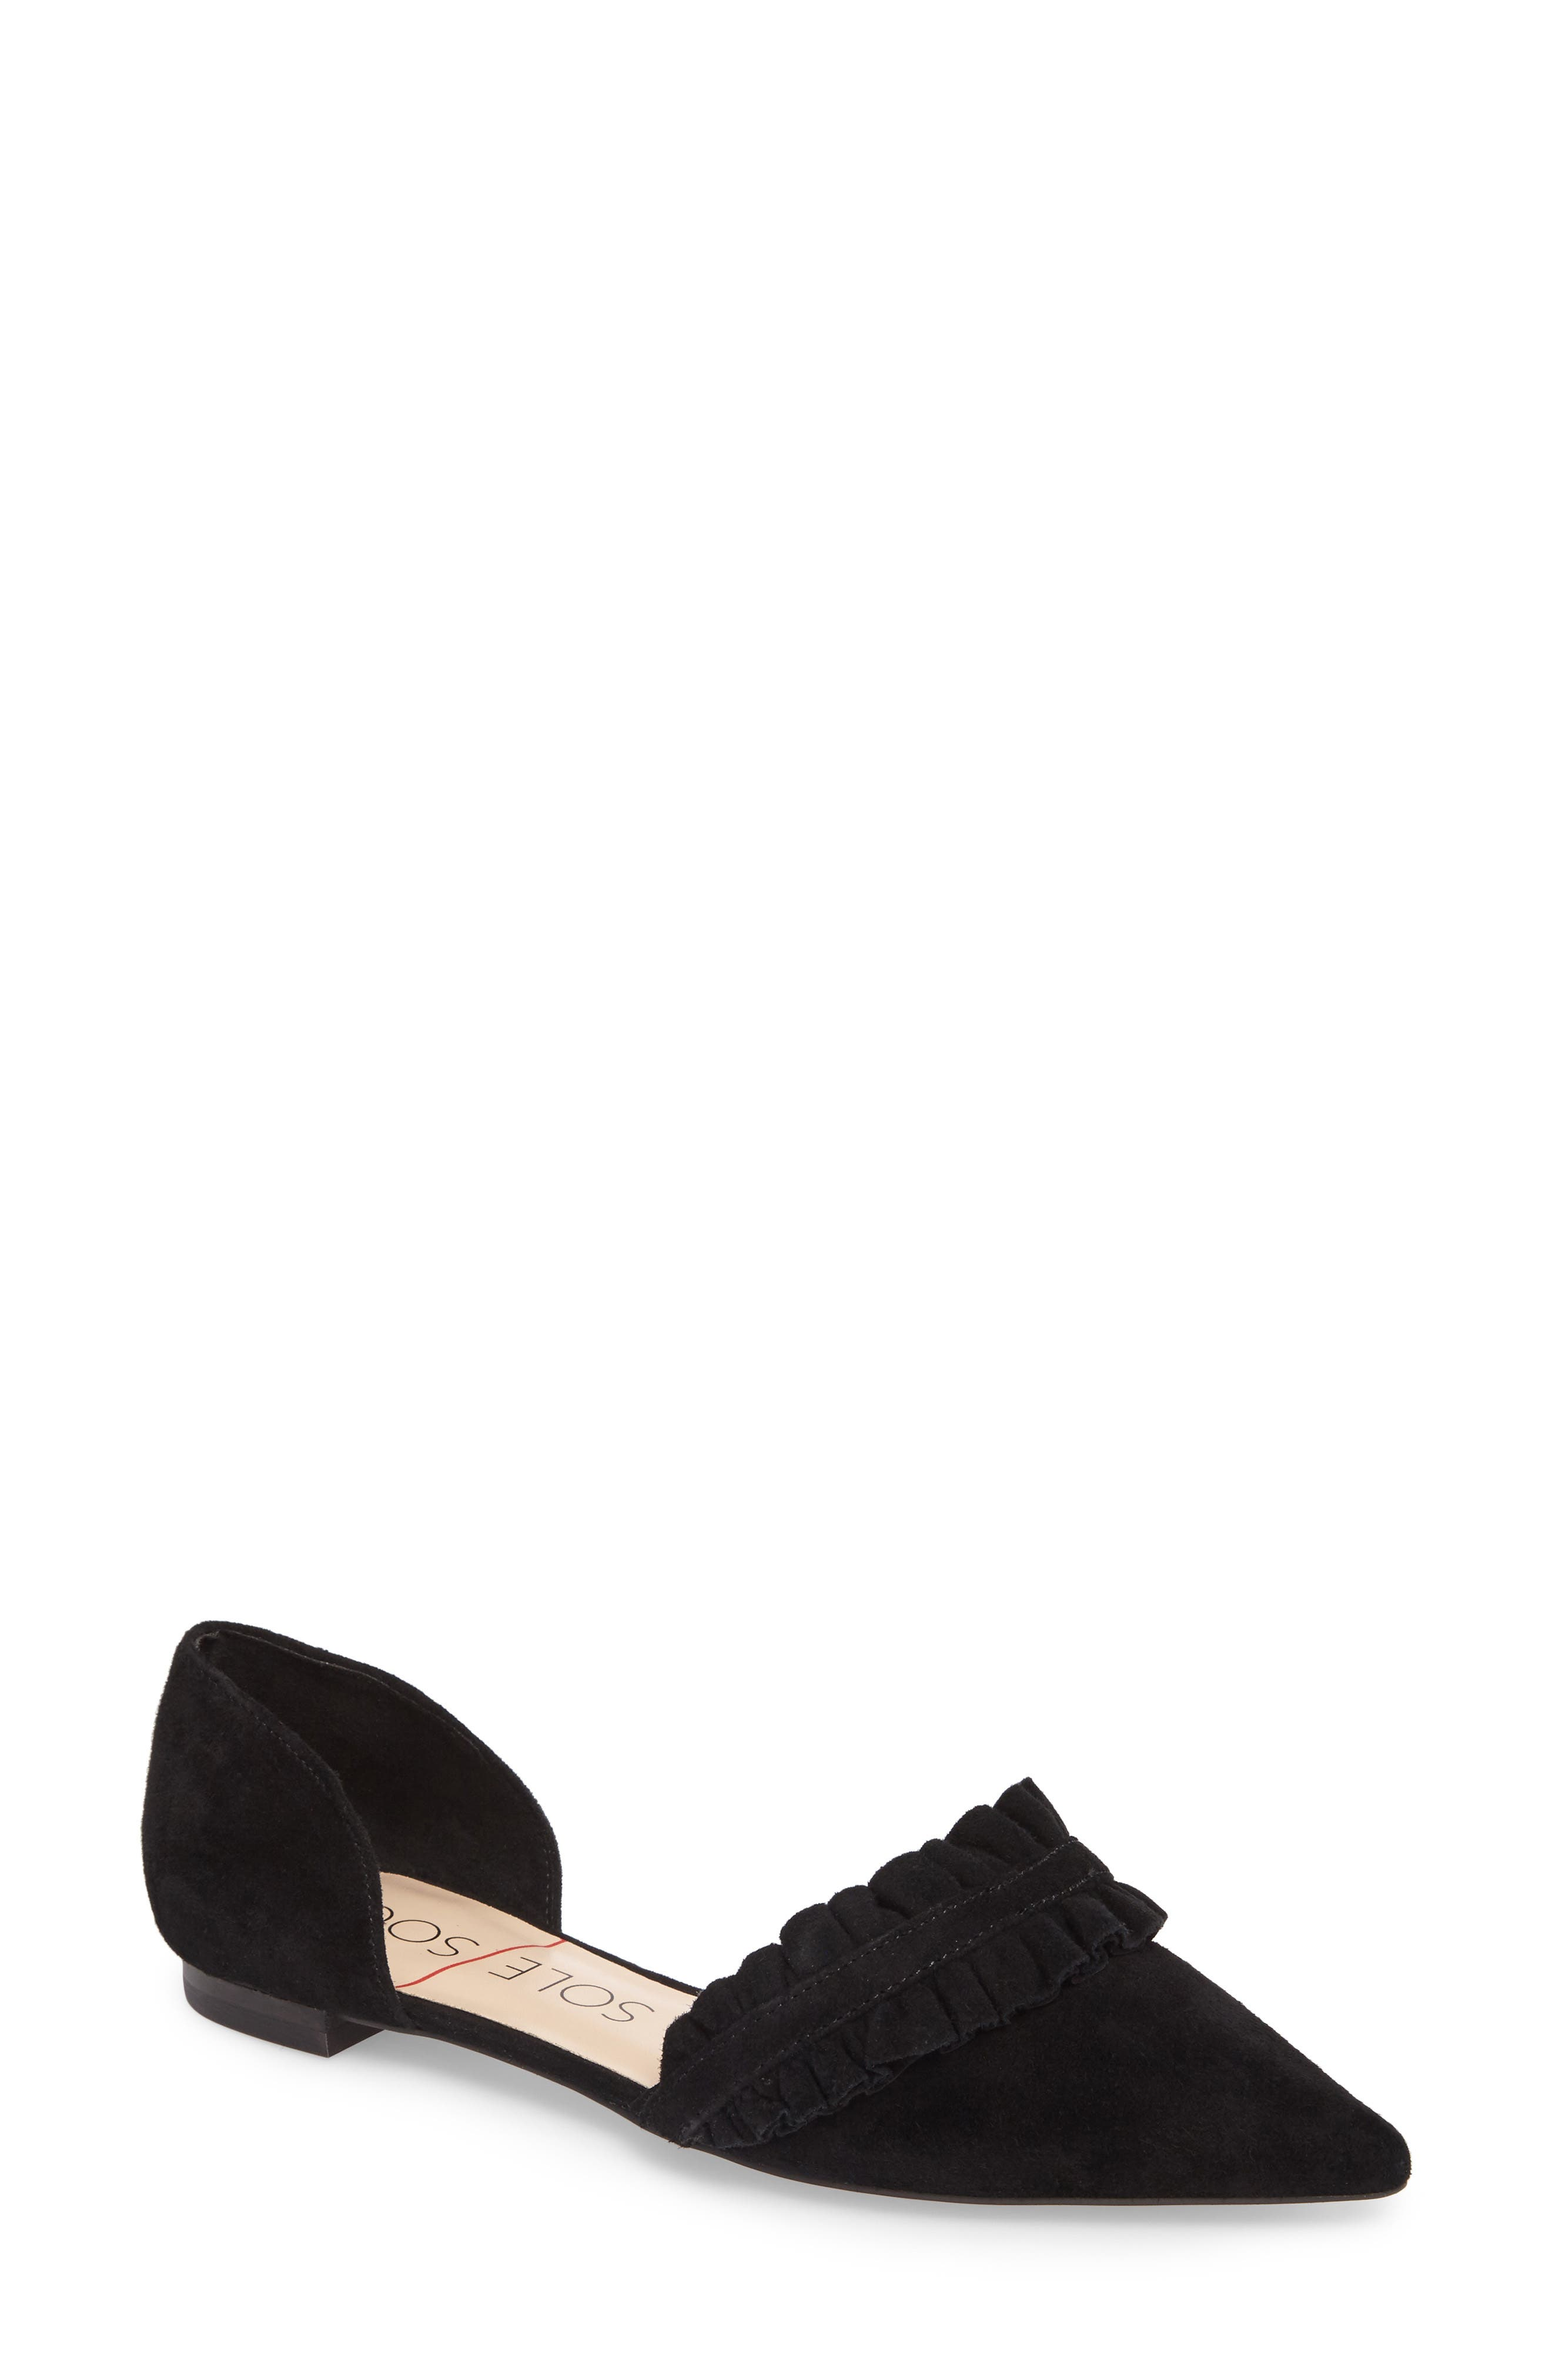 SOLE SOCIETY Rosalind Ruffle d'Orsay Flat, Main, color, 001